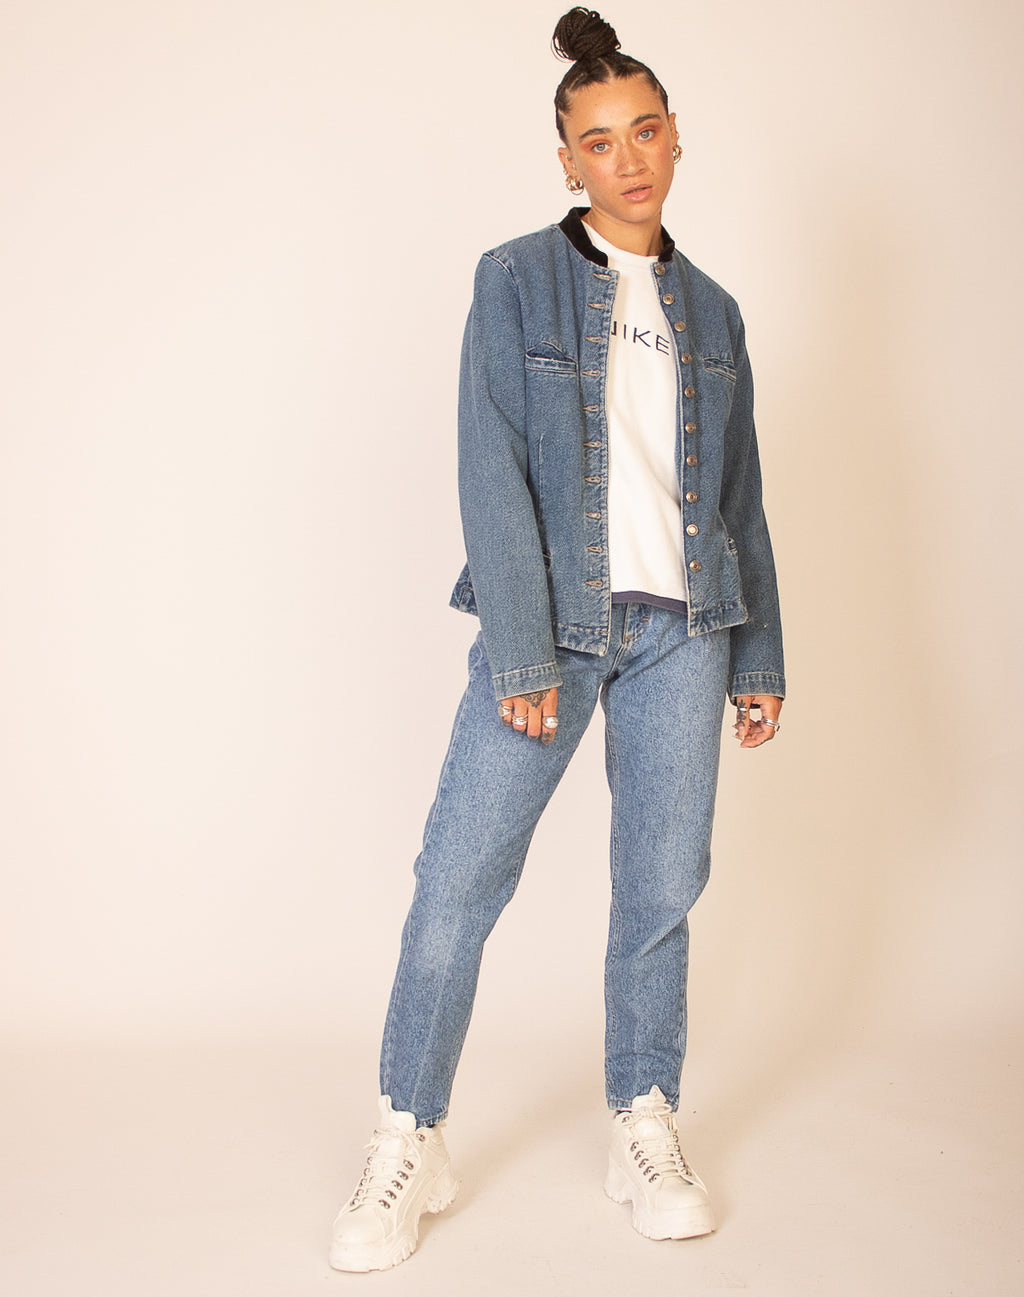 GAP BLUE DENIM JACKET